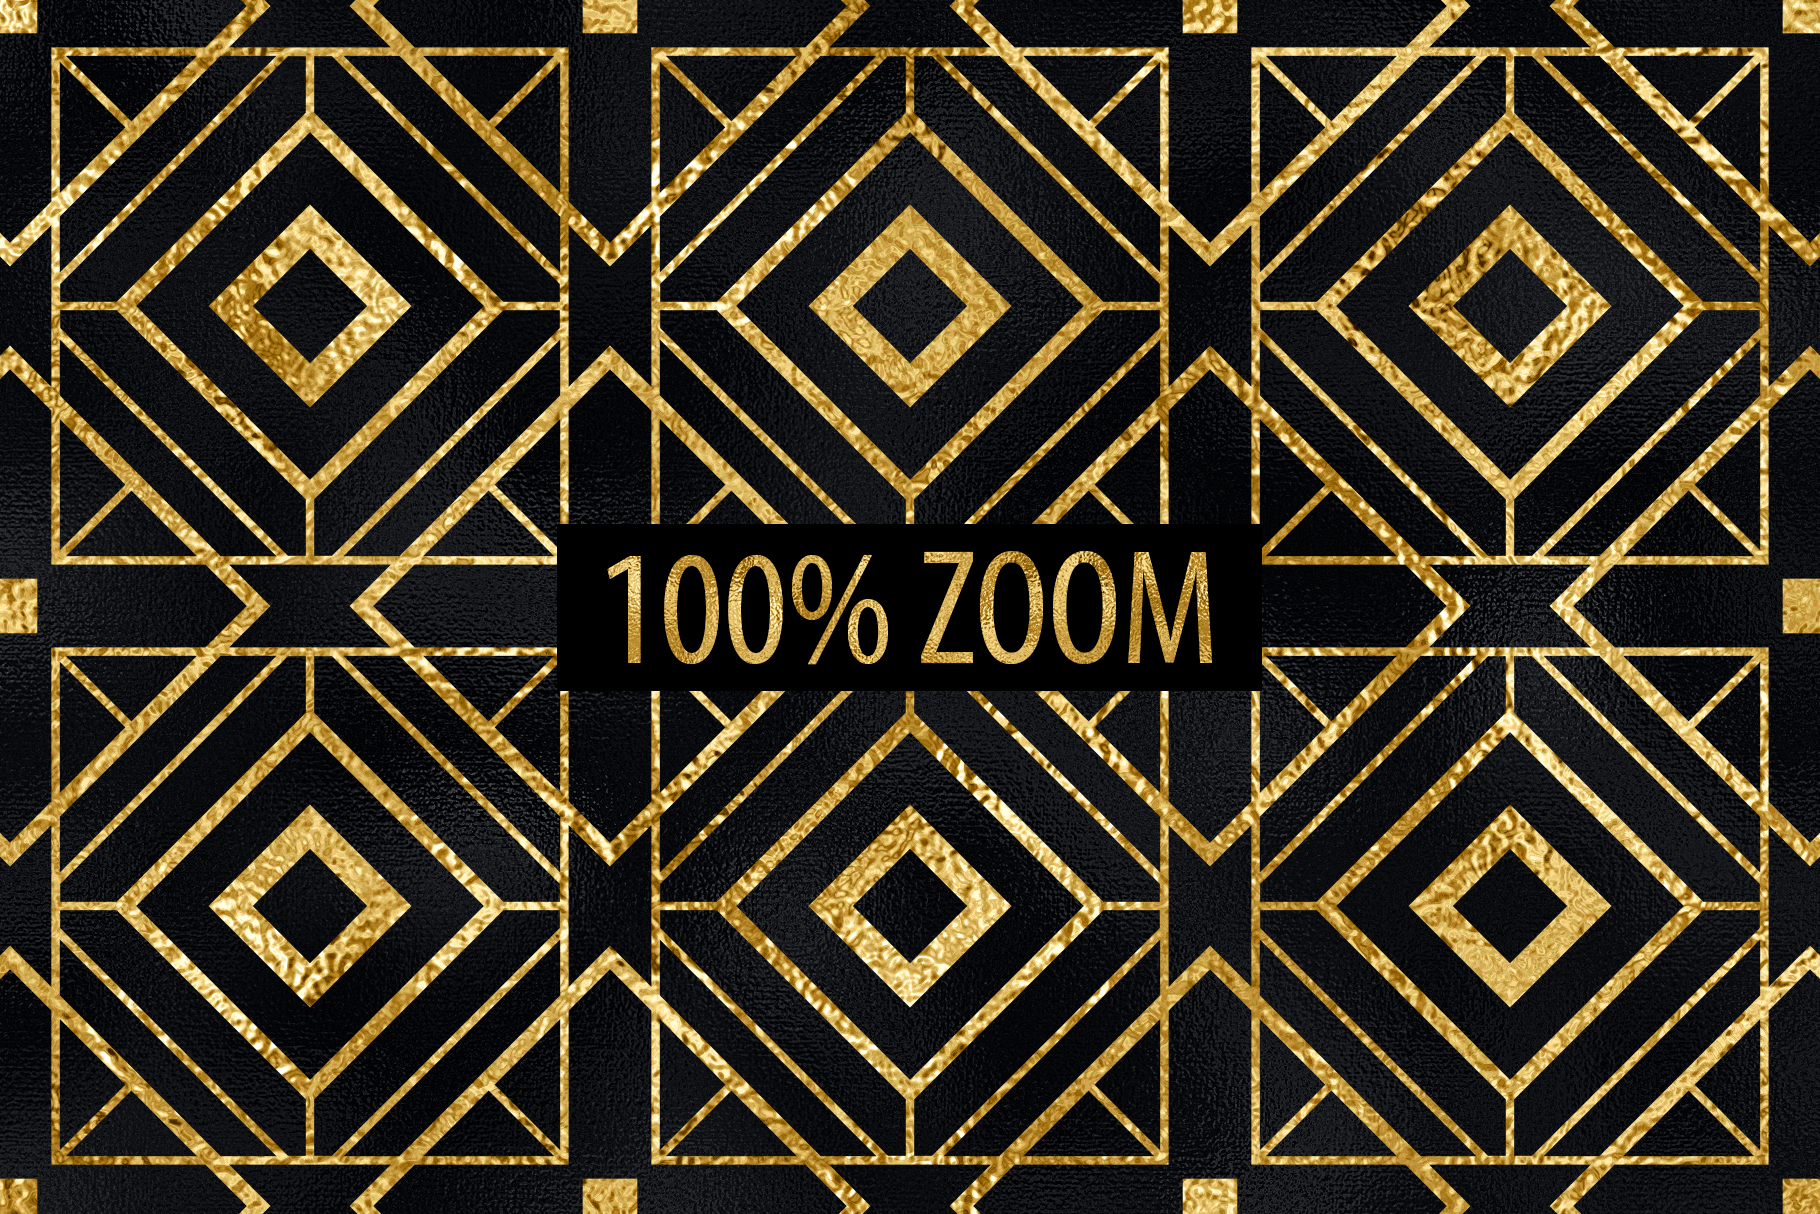 Seamless Art Deco Patterns - Black and Gold Digital Papers example image 7